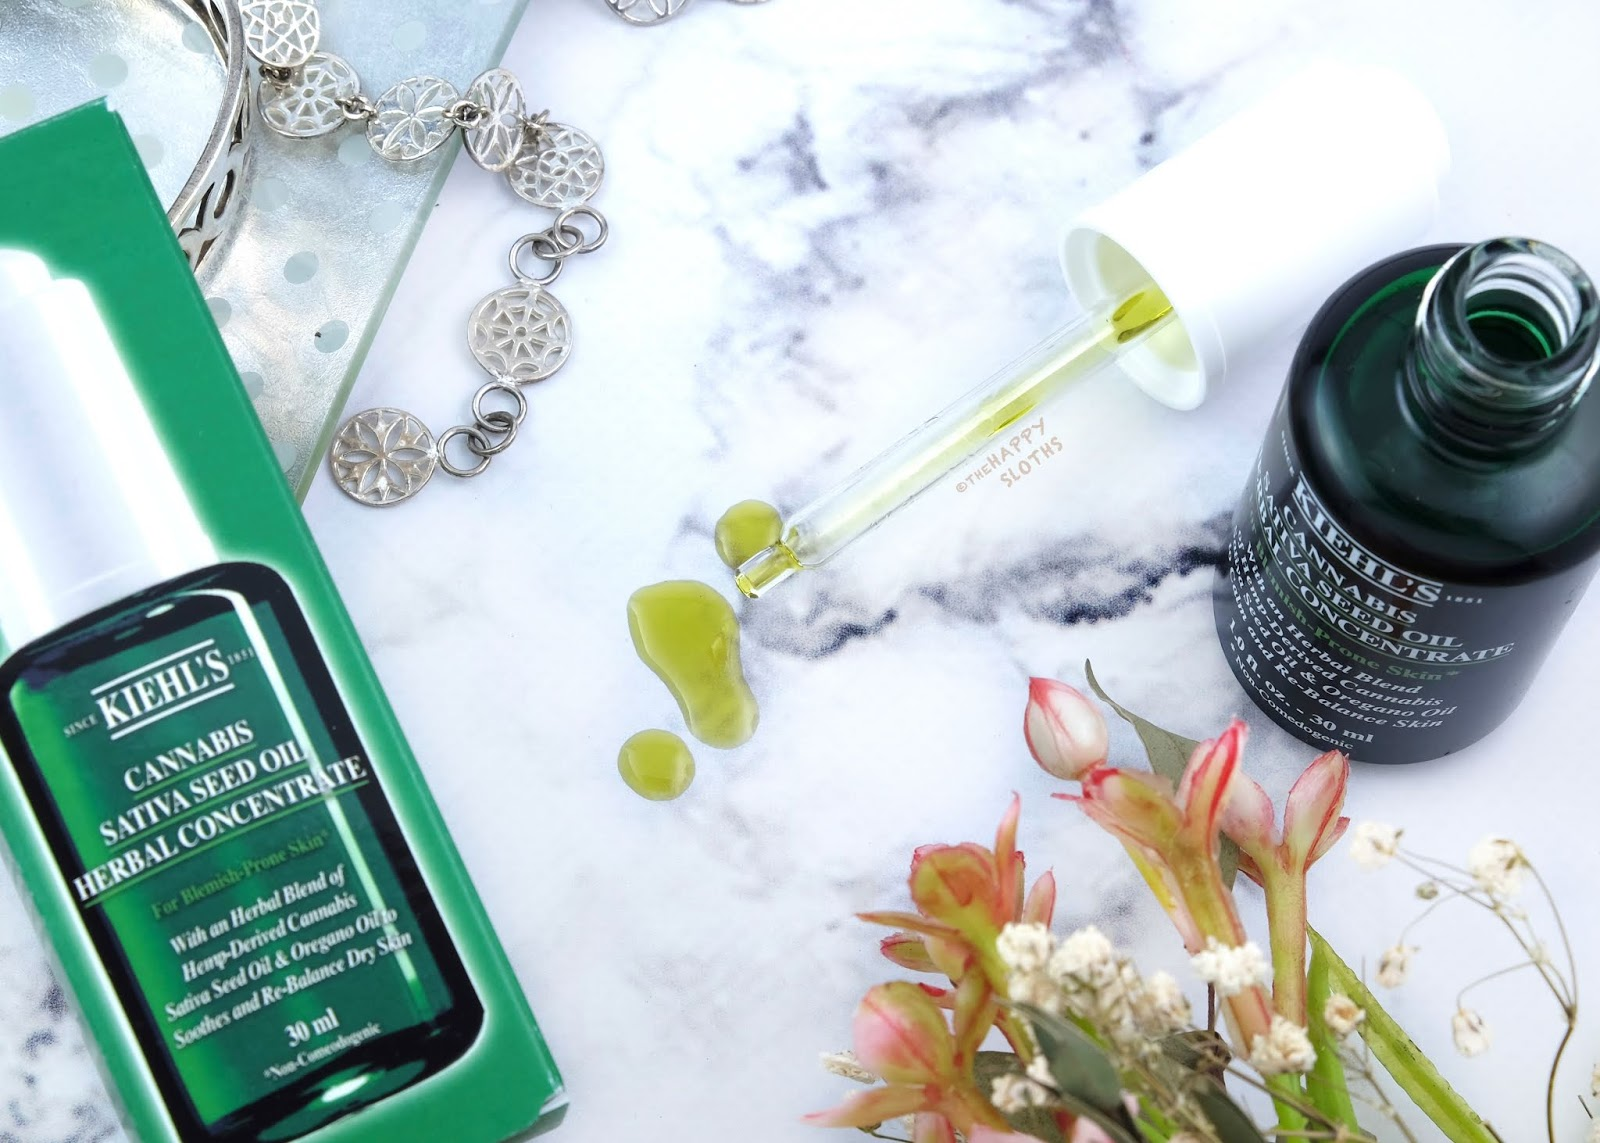 Kiehl's   Cannabis Sativa Seed Oil Herbal Concentrate: Review